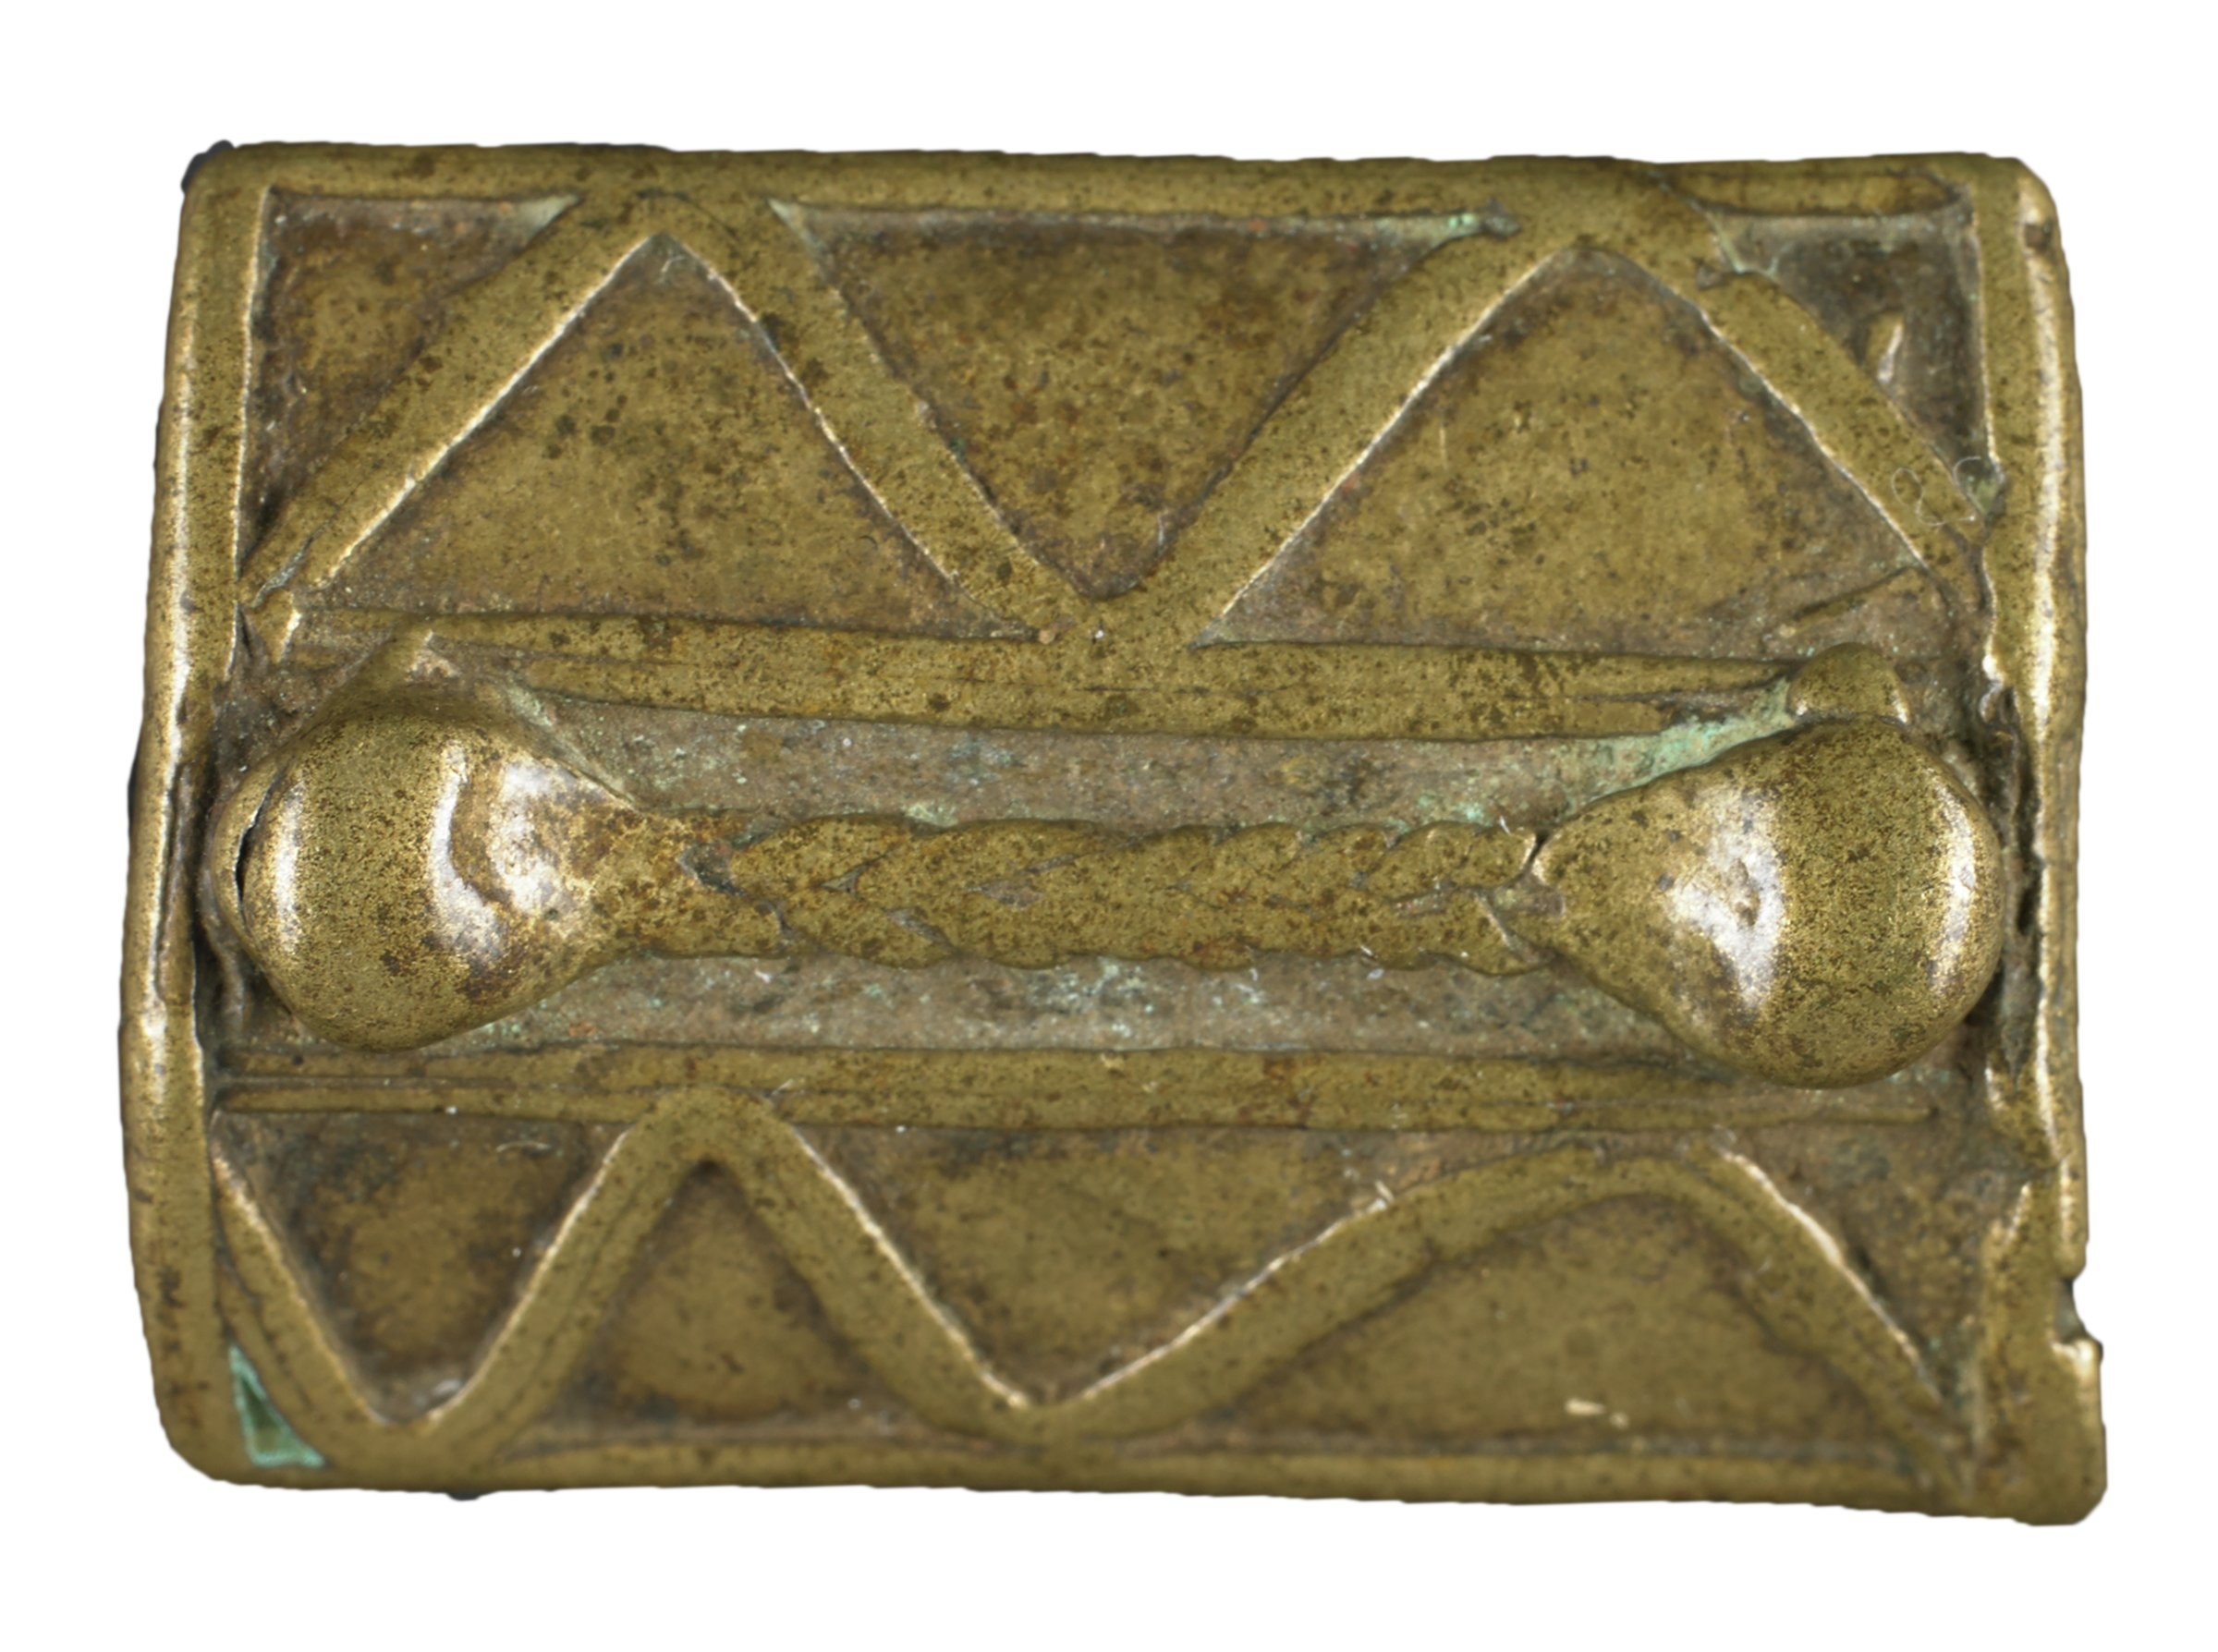 Gold Weight in the Form of a Shield, Asante people or, Baule people, Akan group, Ghana or, Côte d'Ivoire, African, brass